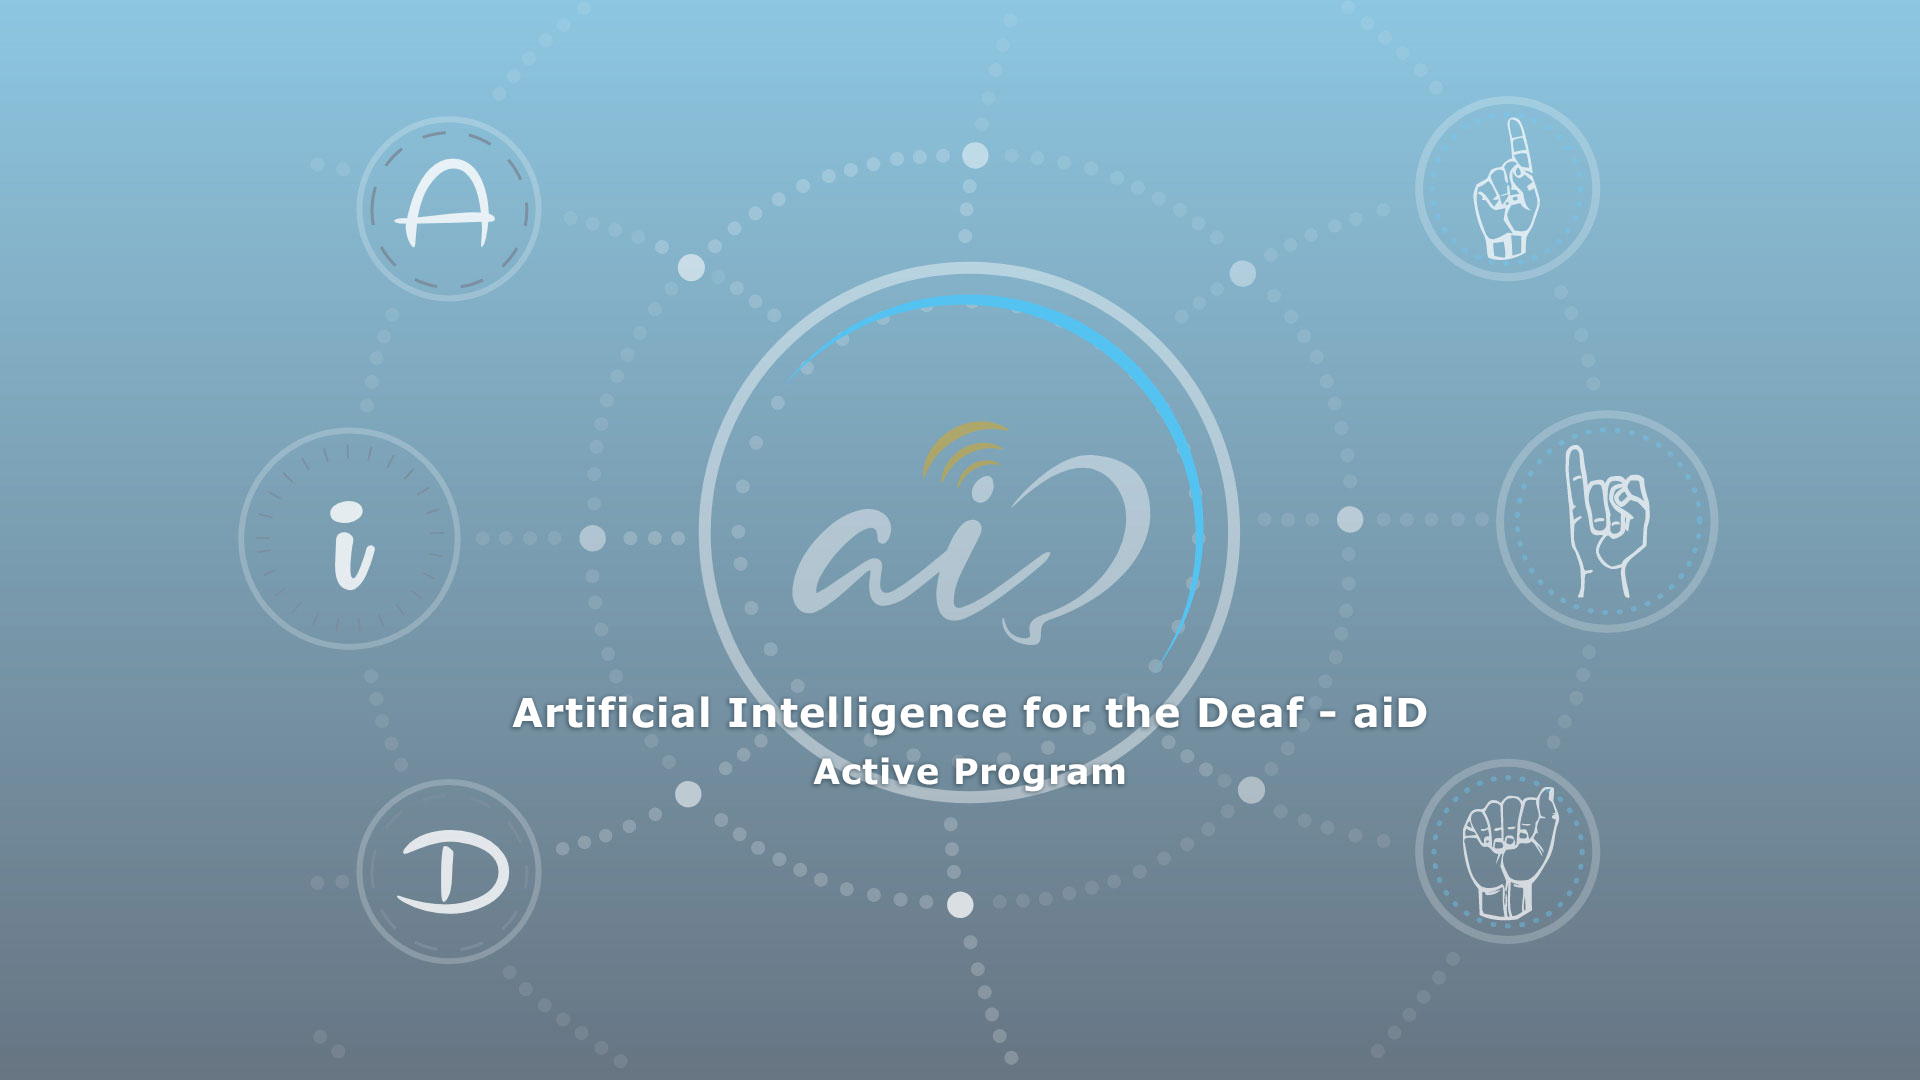 Artificial Intelligence for the Deaf - aiD